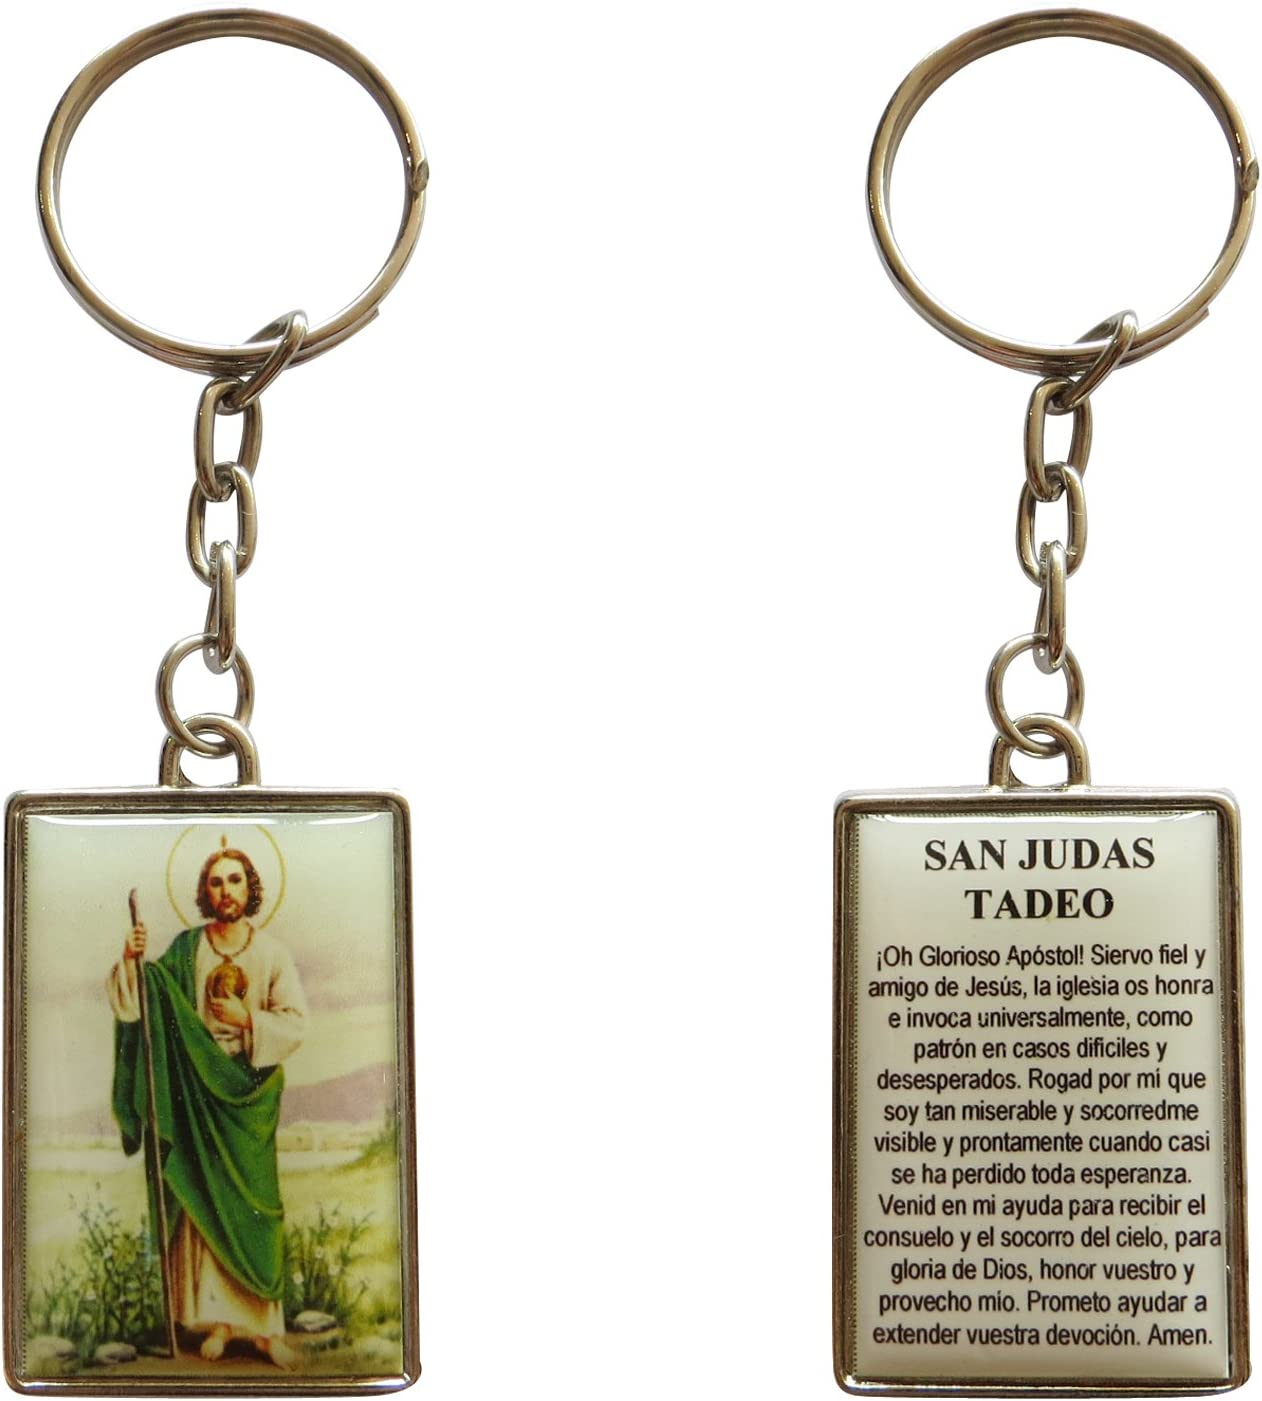 Angelitos De Mexico San Judas Tadeo Jude The Apostle Keychain With Spanish Desperate Causes Prayer Silver Sur.ly for drupal sur.ly extension for both major drupal version is. universitas kusuma husada surakarta